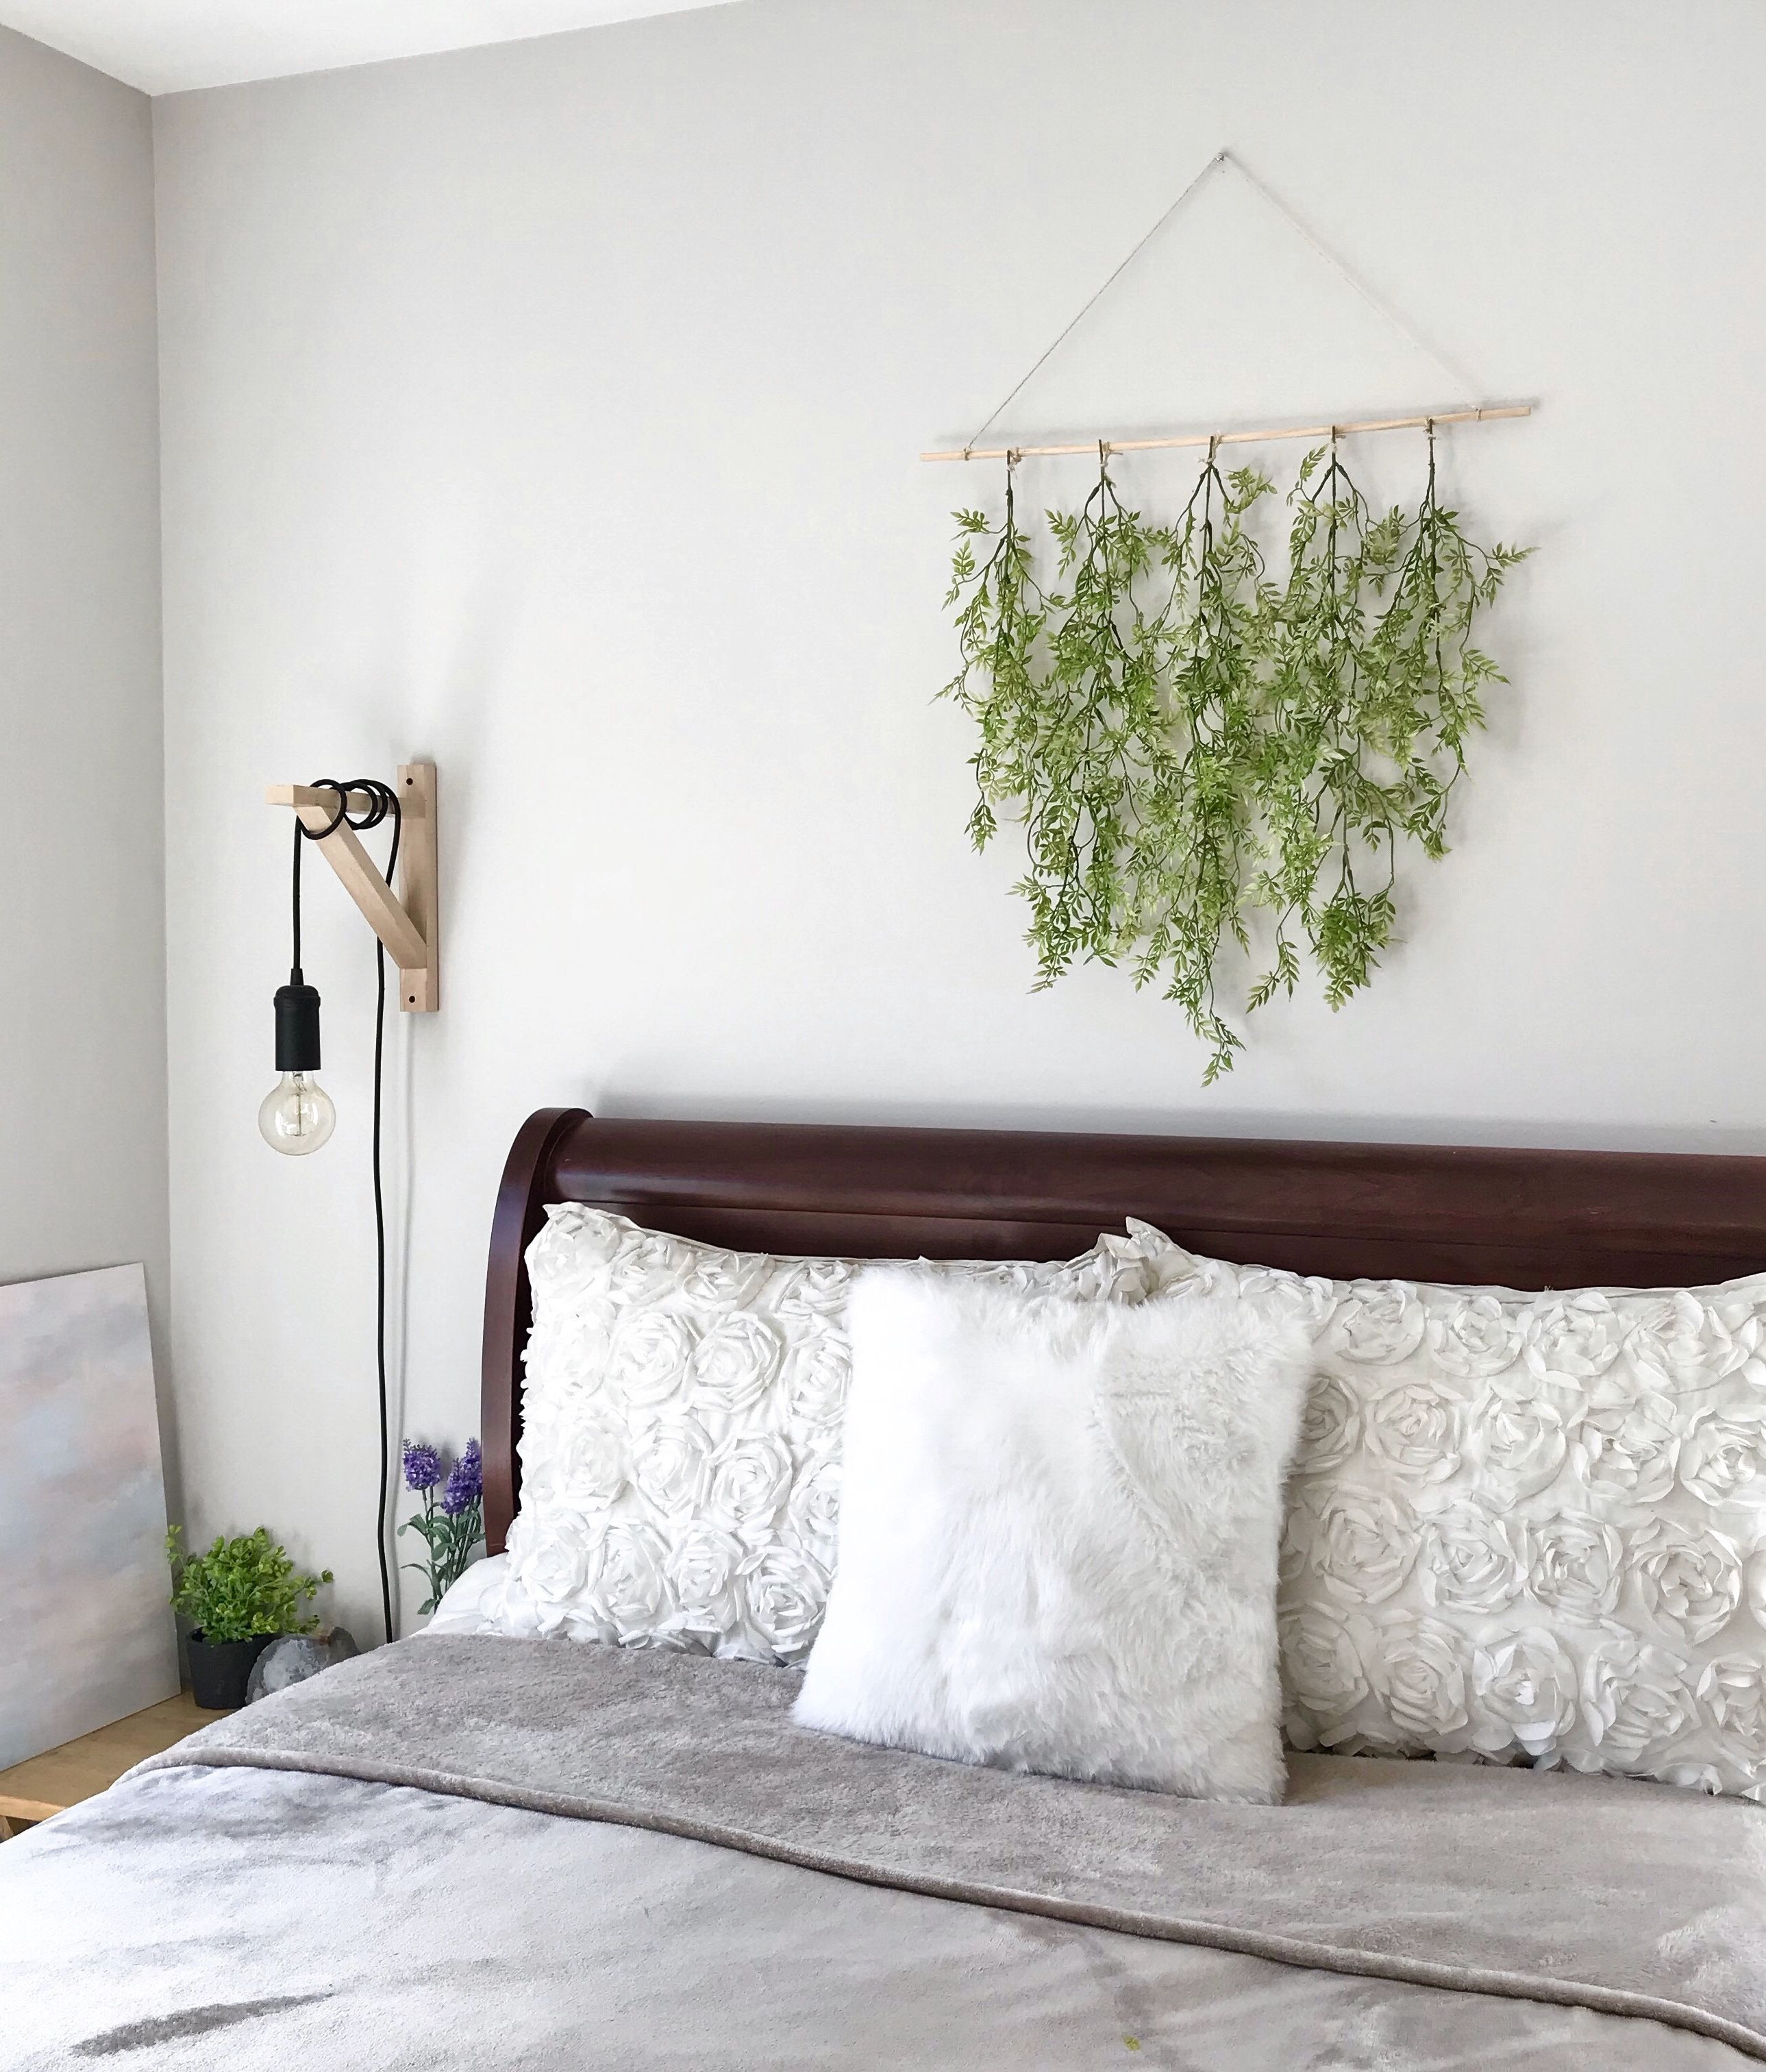 Now Making And Selling Hanging Wall Plants On Etsy Etsy